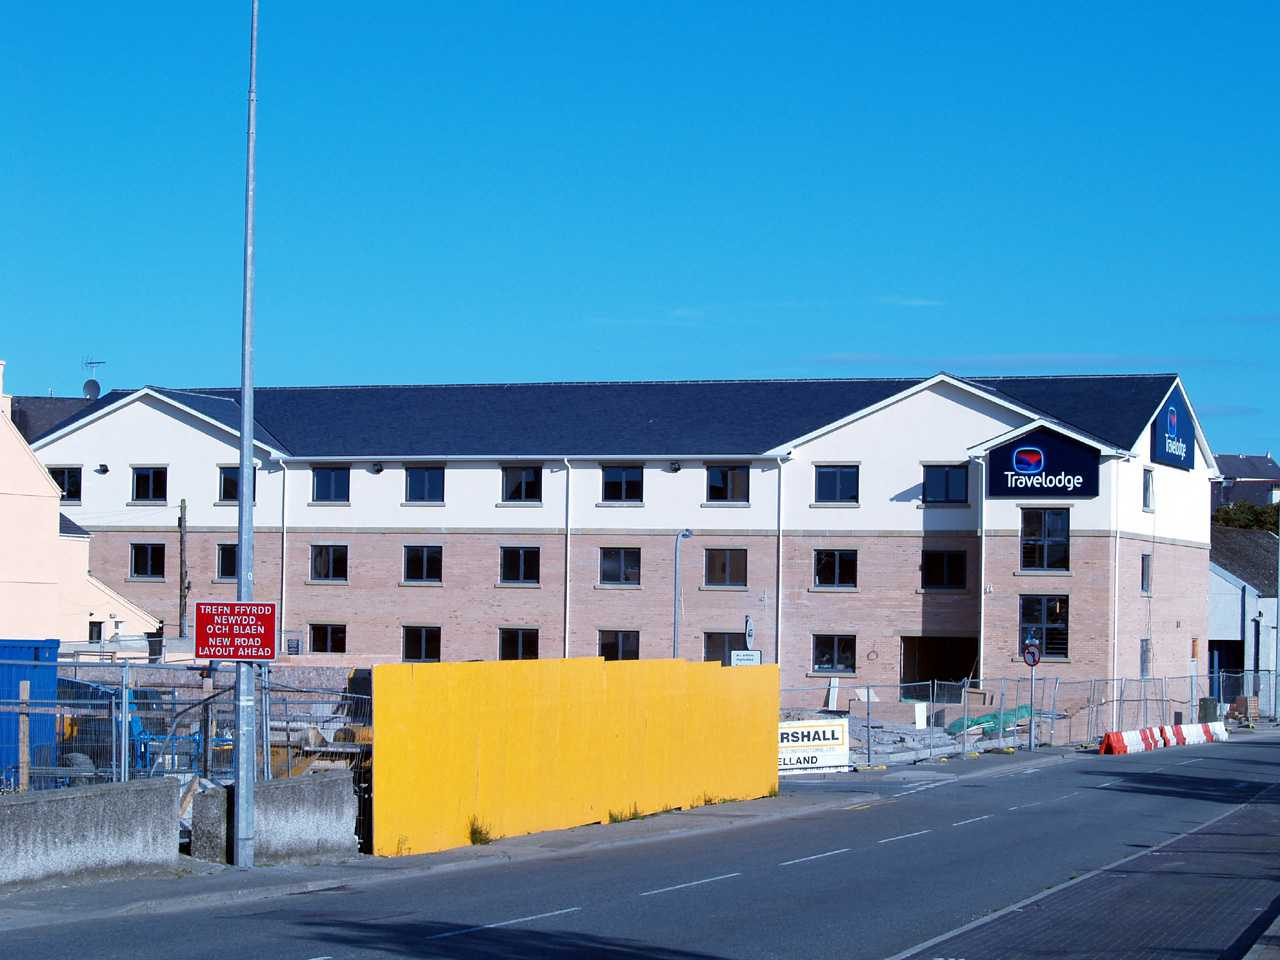 Anglesey, Holyhead, Travelodge Hotel near completion 26th August 2007